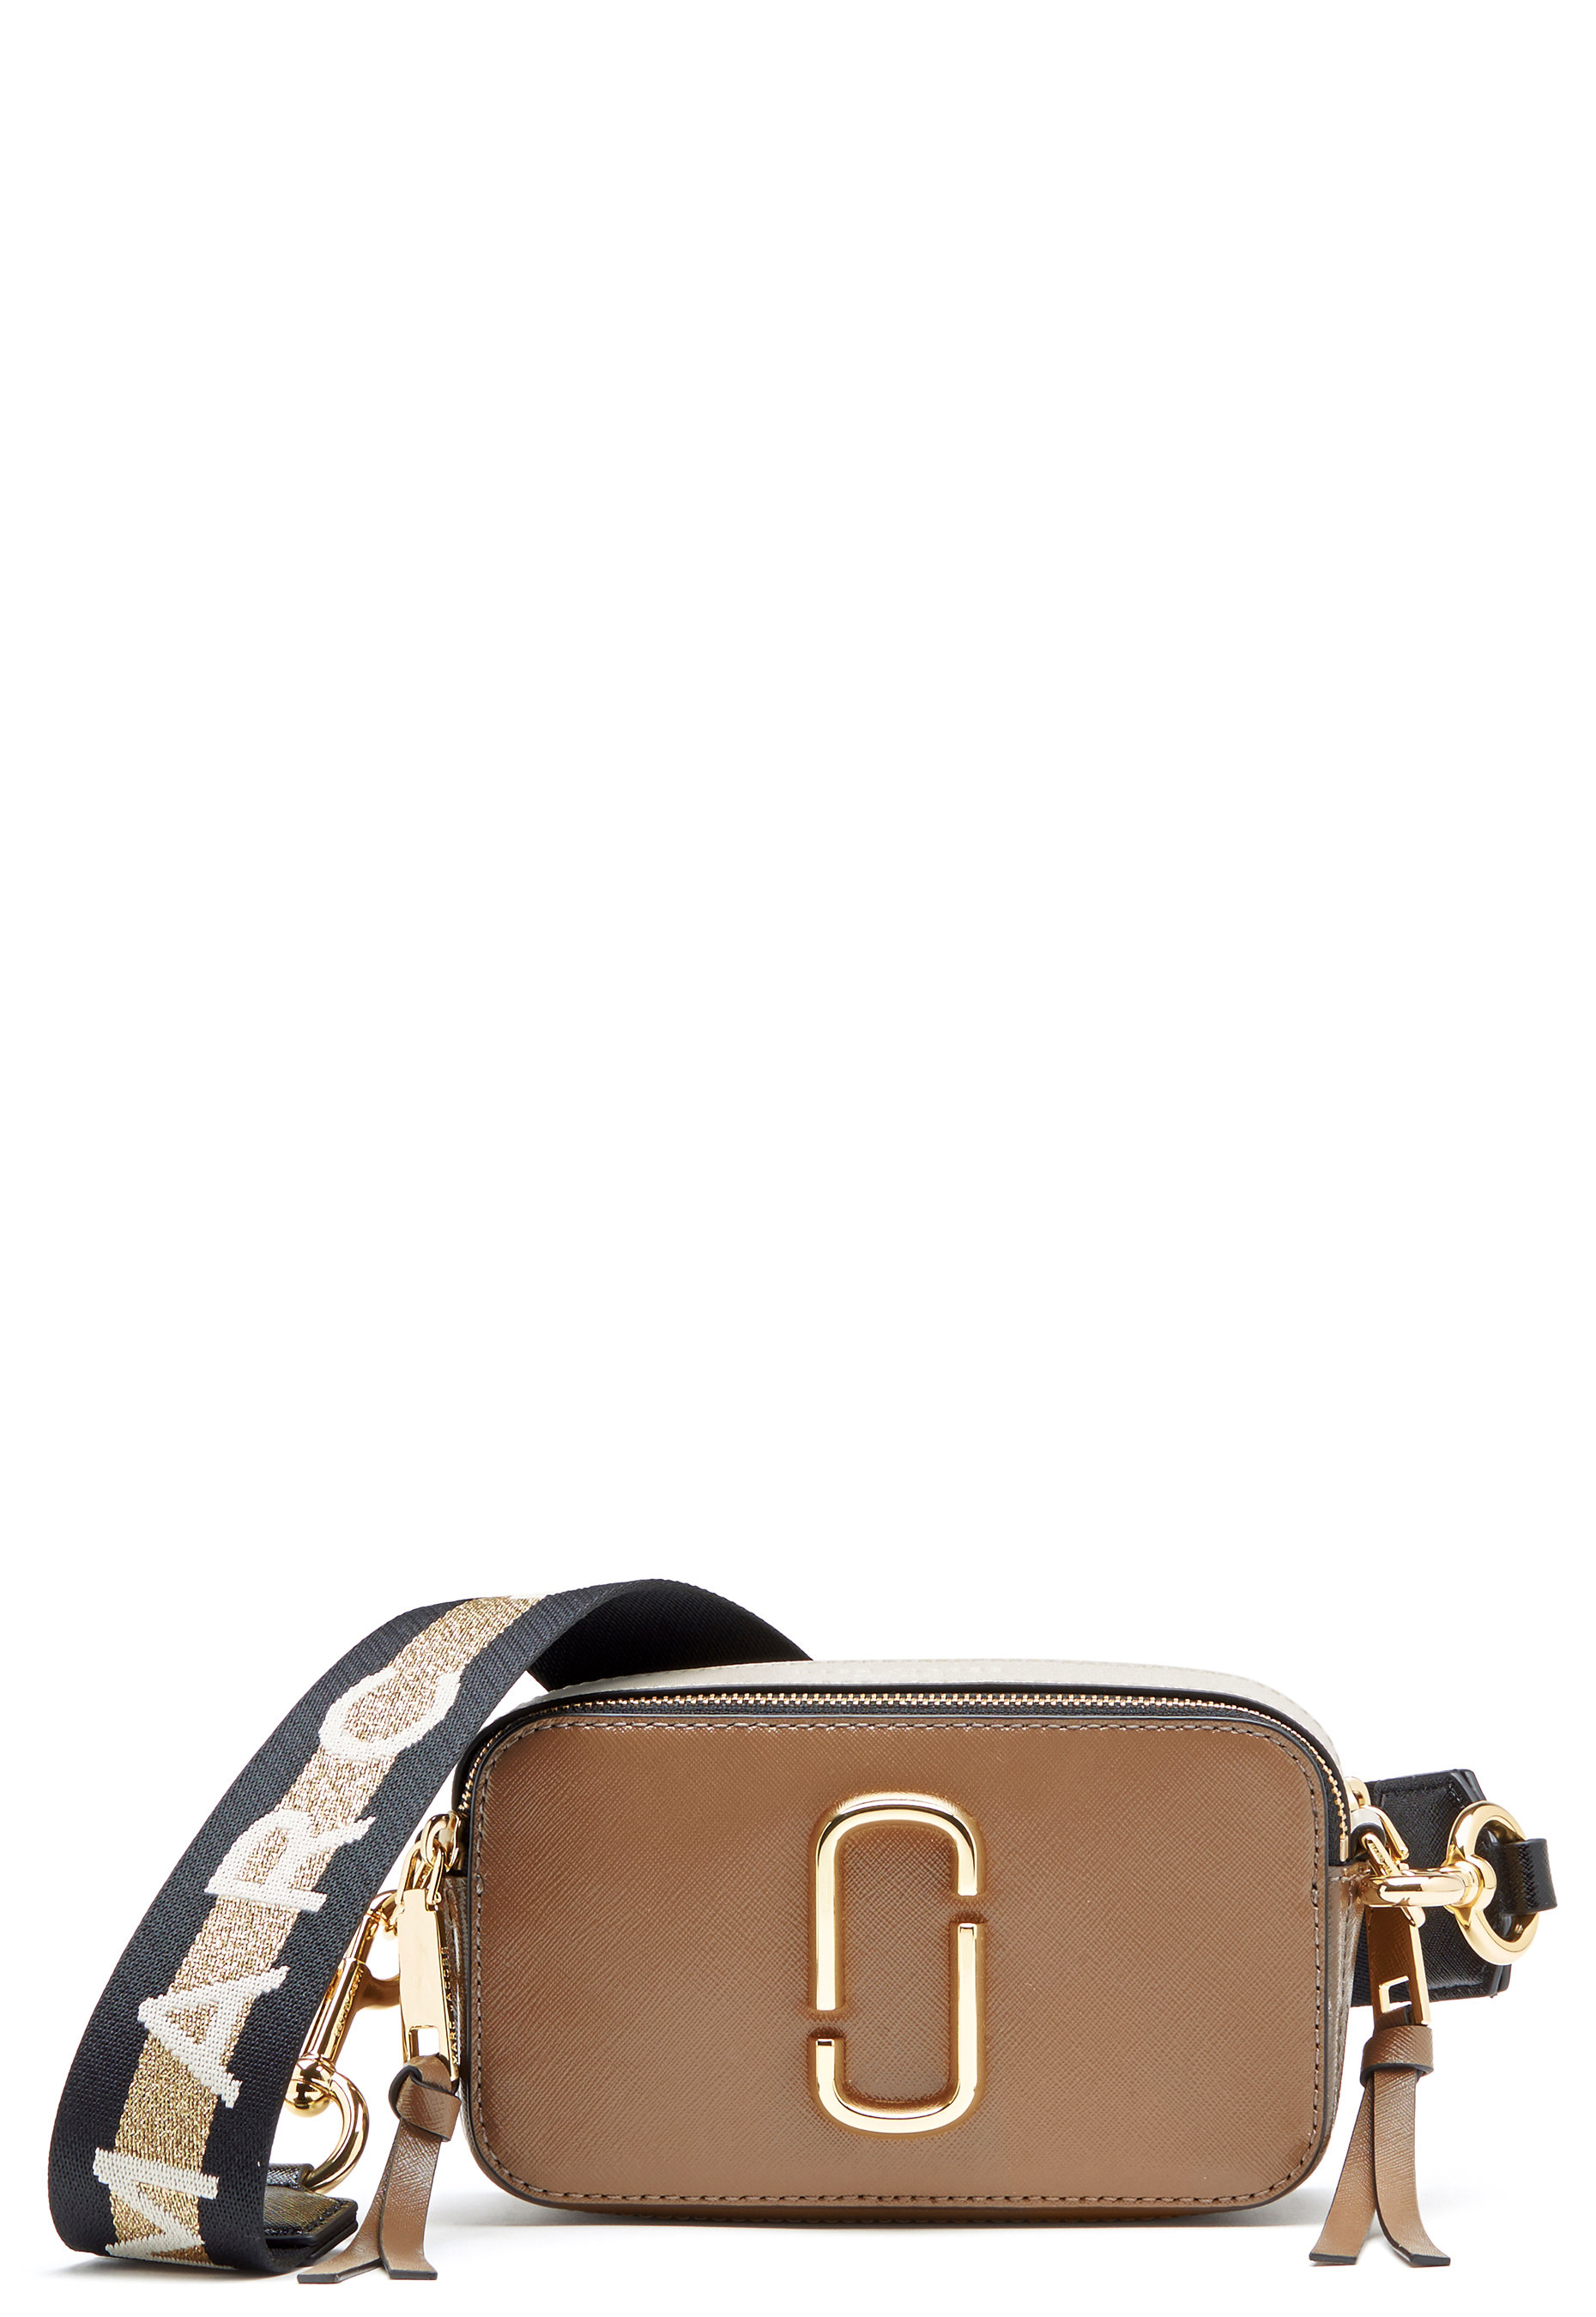 The Marc Jacobs Snapshot Marc Jacobs French Grey Bubbleroom